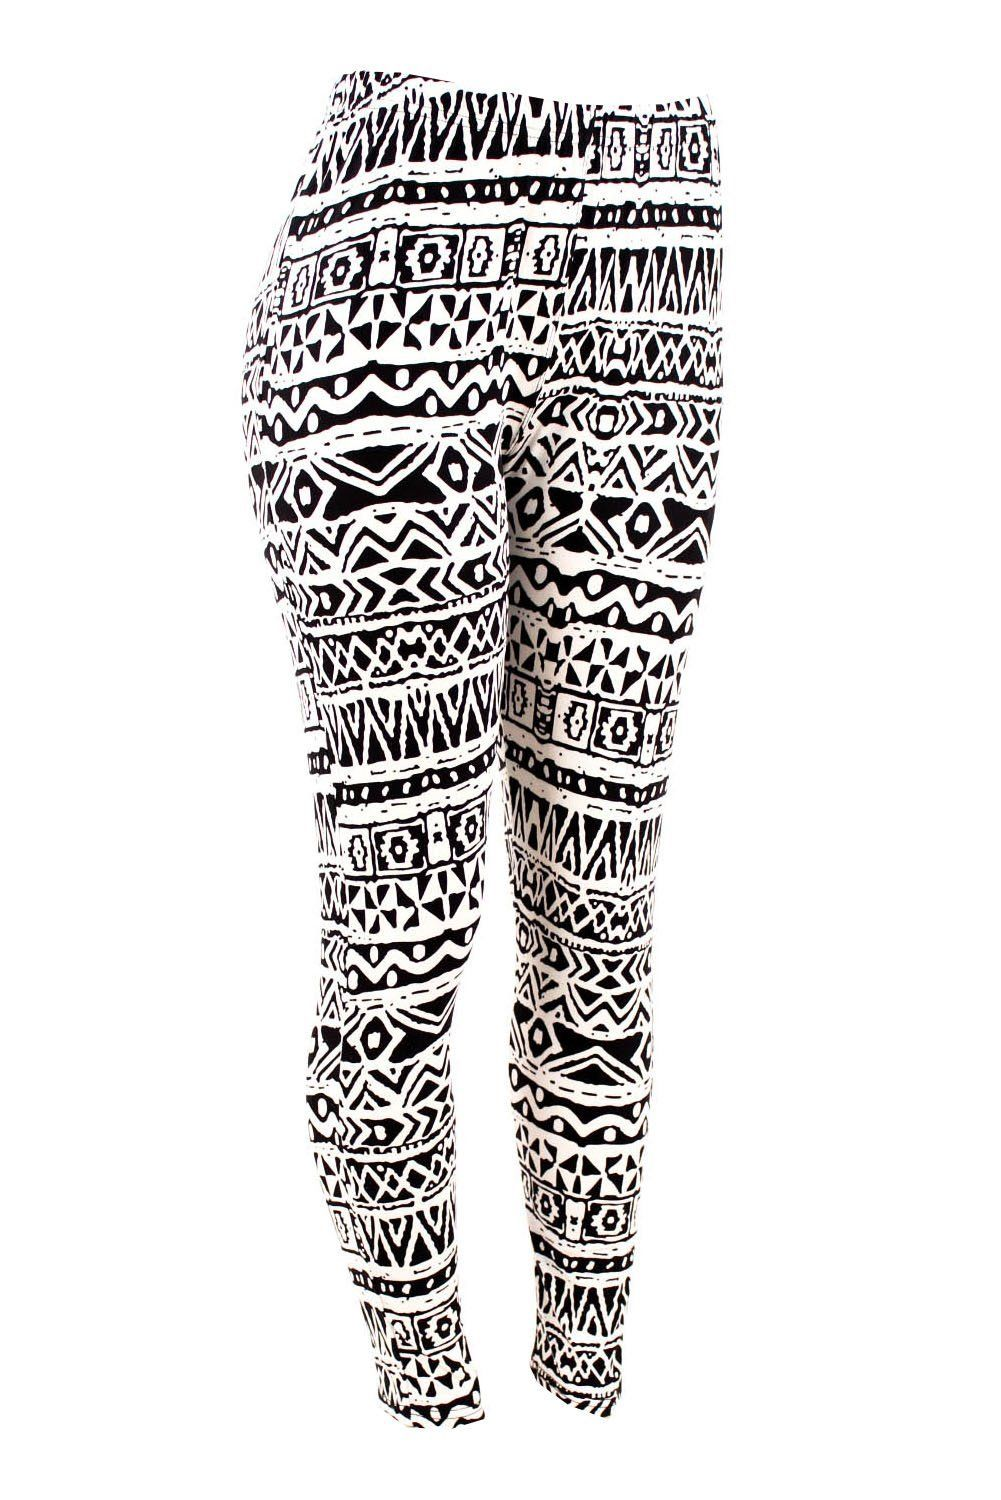 35d549e9fbc8b8 ShoSho Women's Plus Size Tribal Aztec Print Leggings ($11.95) http://www